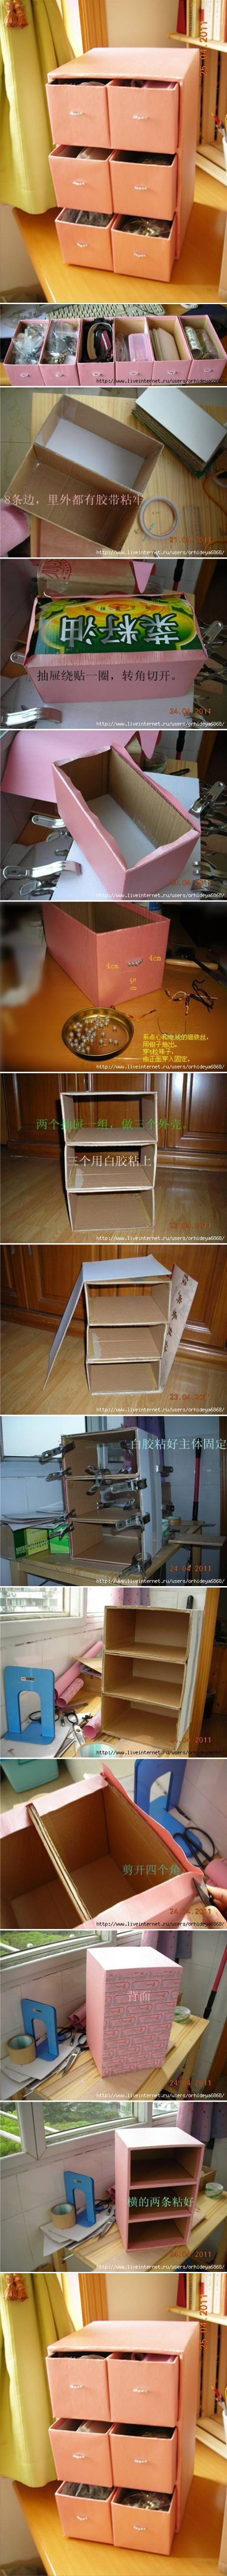 DIY Box Chest diy crafts easy crafts diy ideas home crafts organization organizing home organization organization tips crafts for teens college hacks